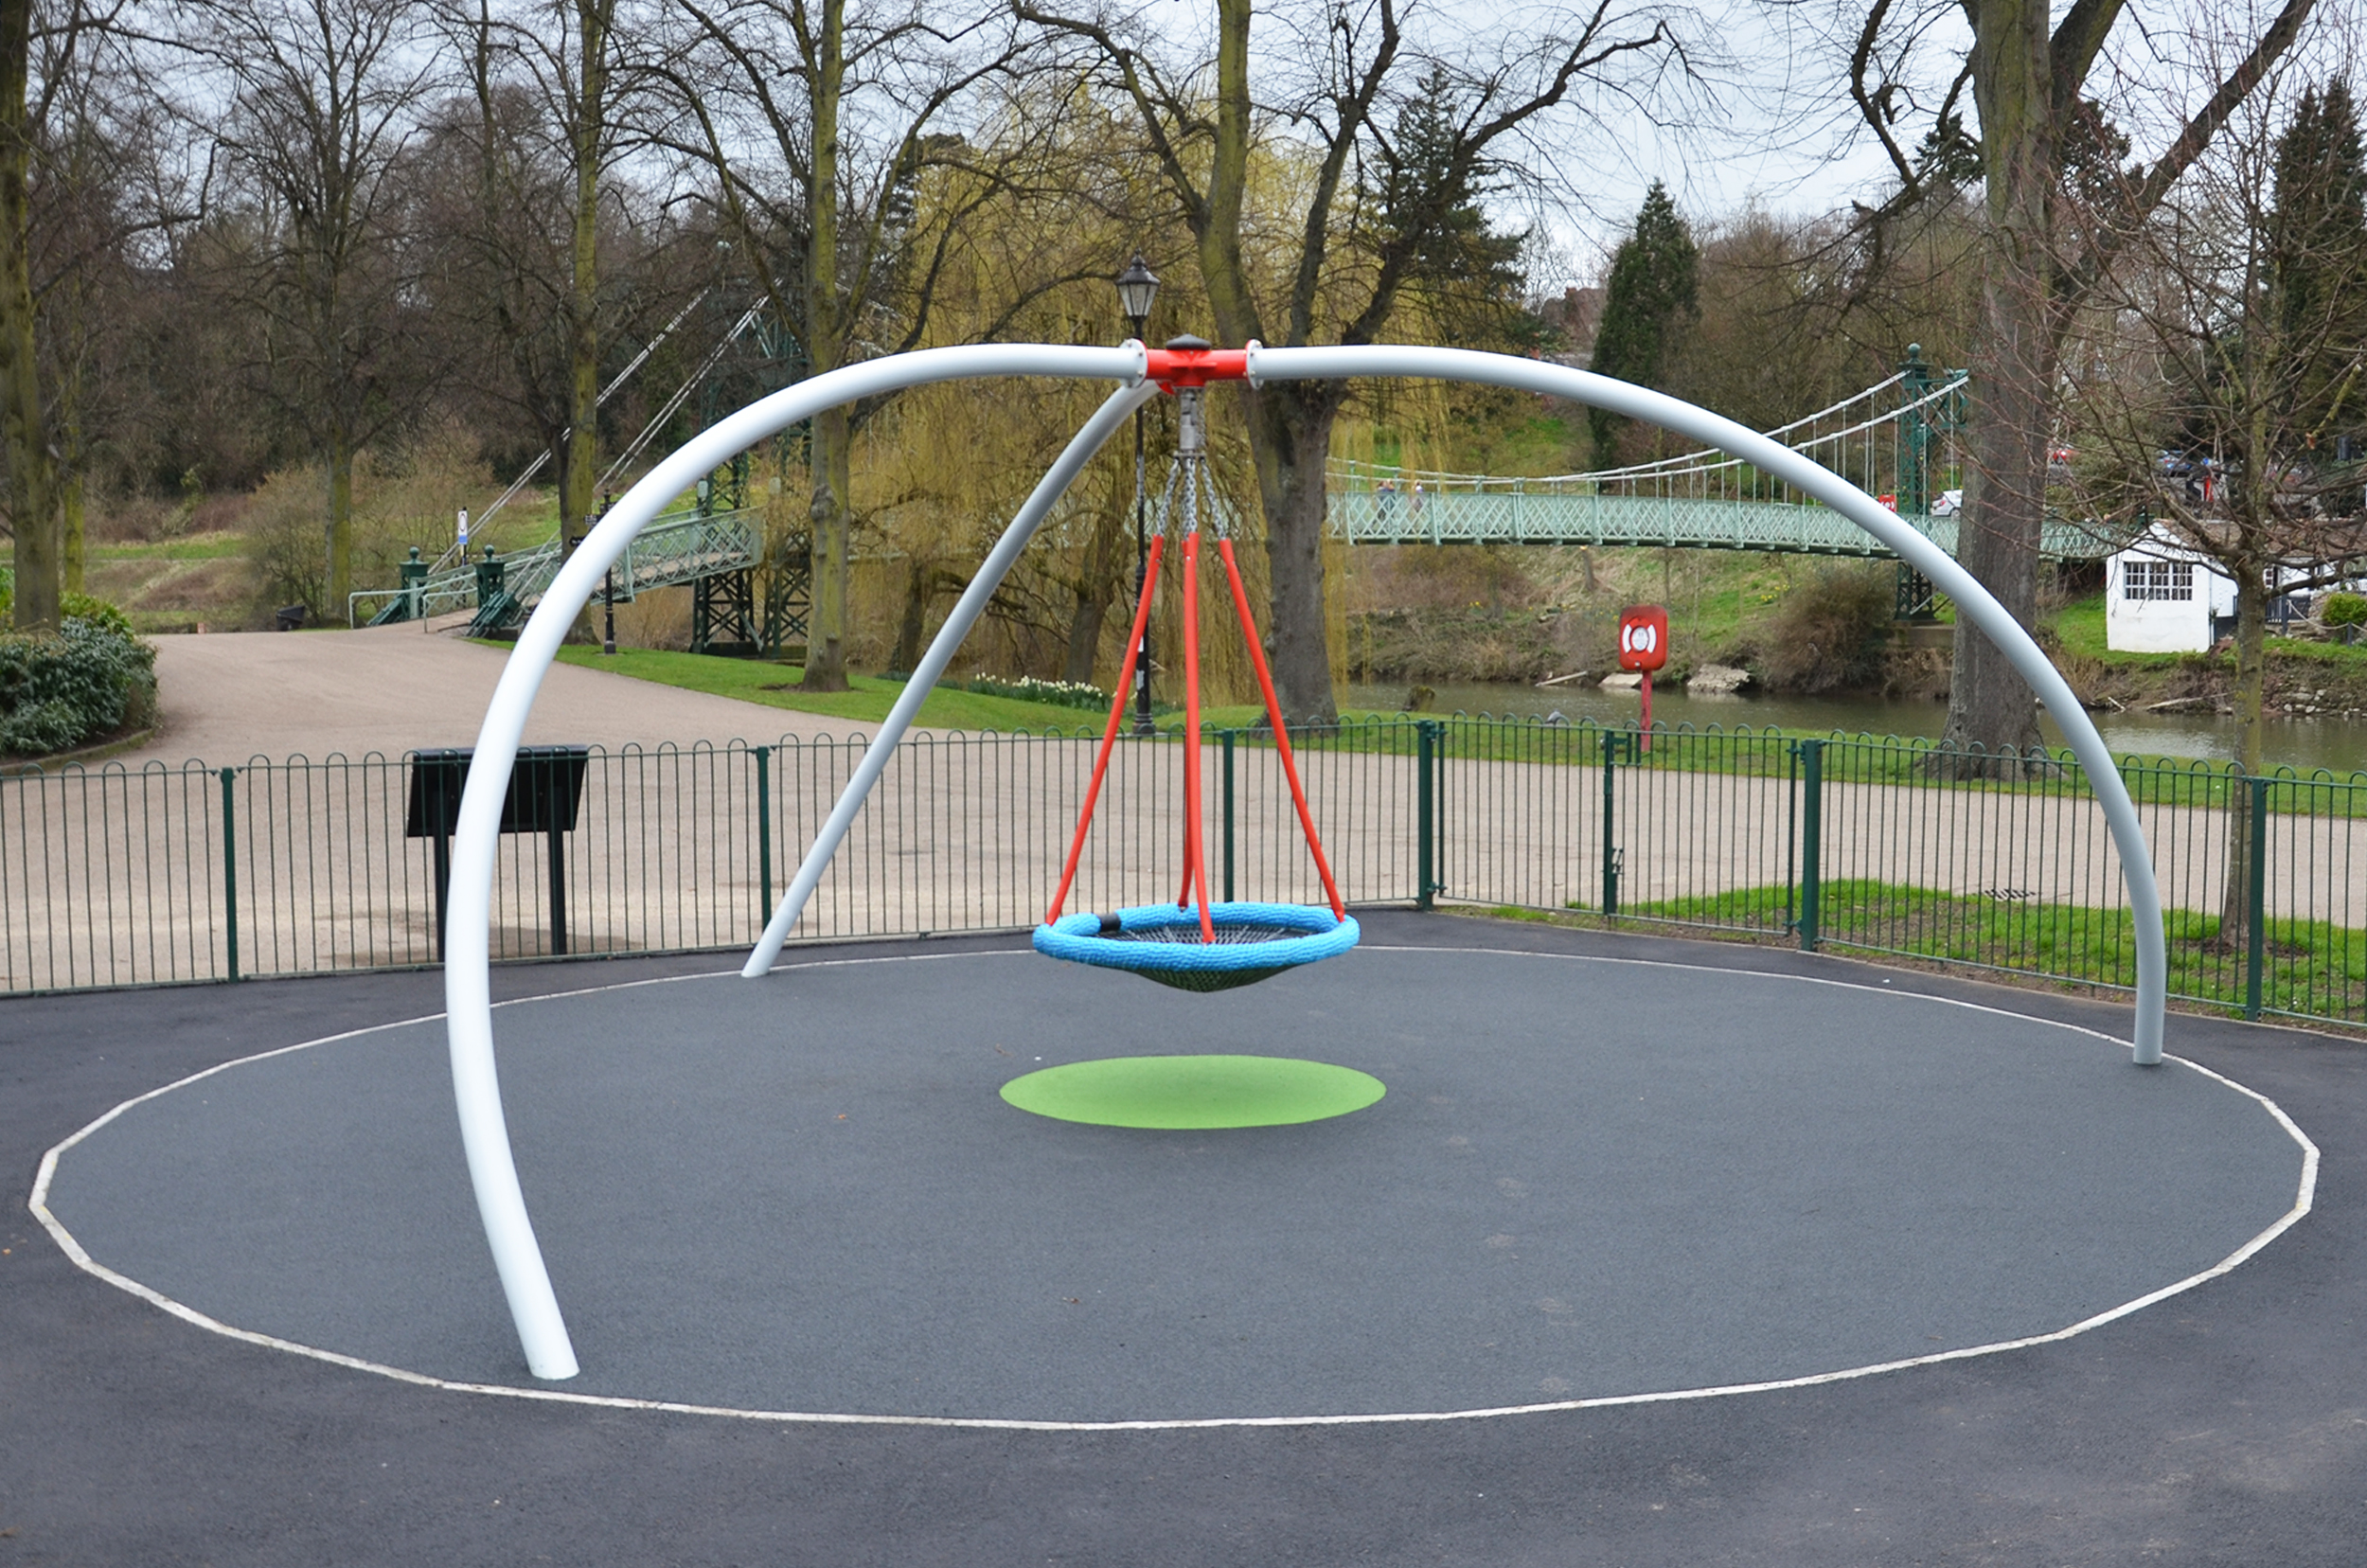 the inclusive single point swing has a blue basket seat hanging on chain from a central red pivot held by three curved white legs, it is sat above black rubber surface with a green dot, surrounded by green fencing with trees and a bridge in the background